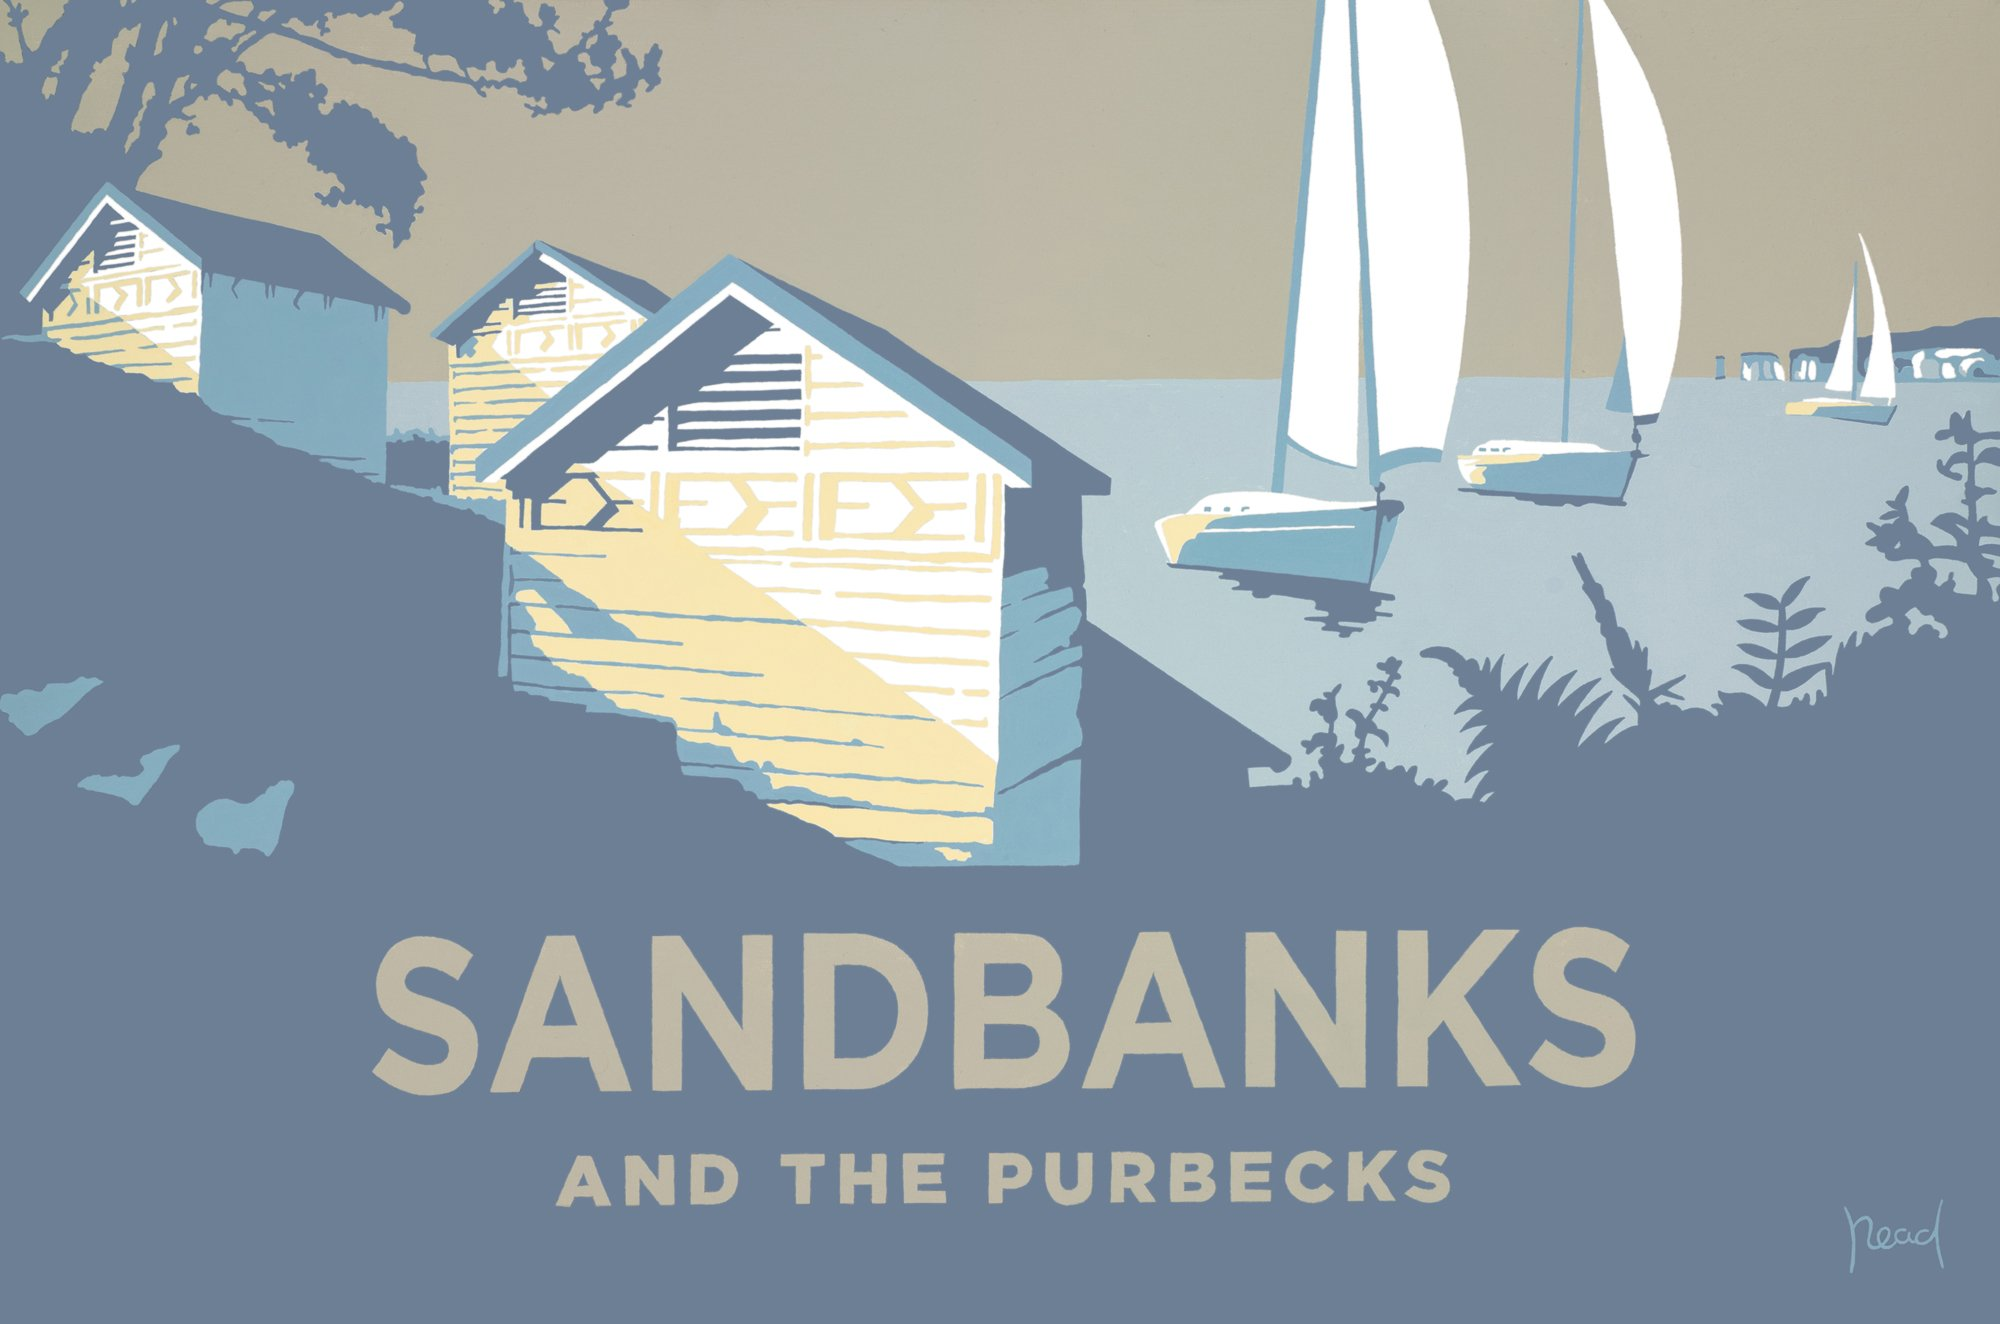 Sandbanks and the Purbecks Landscape